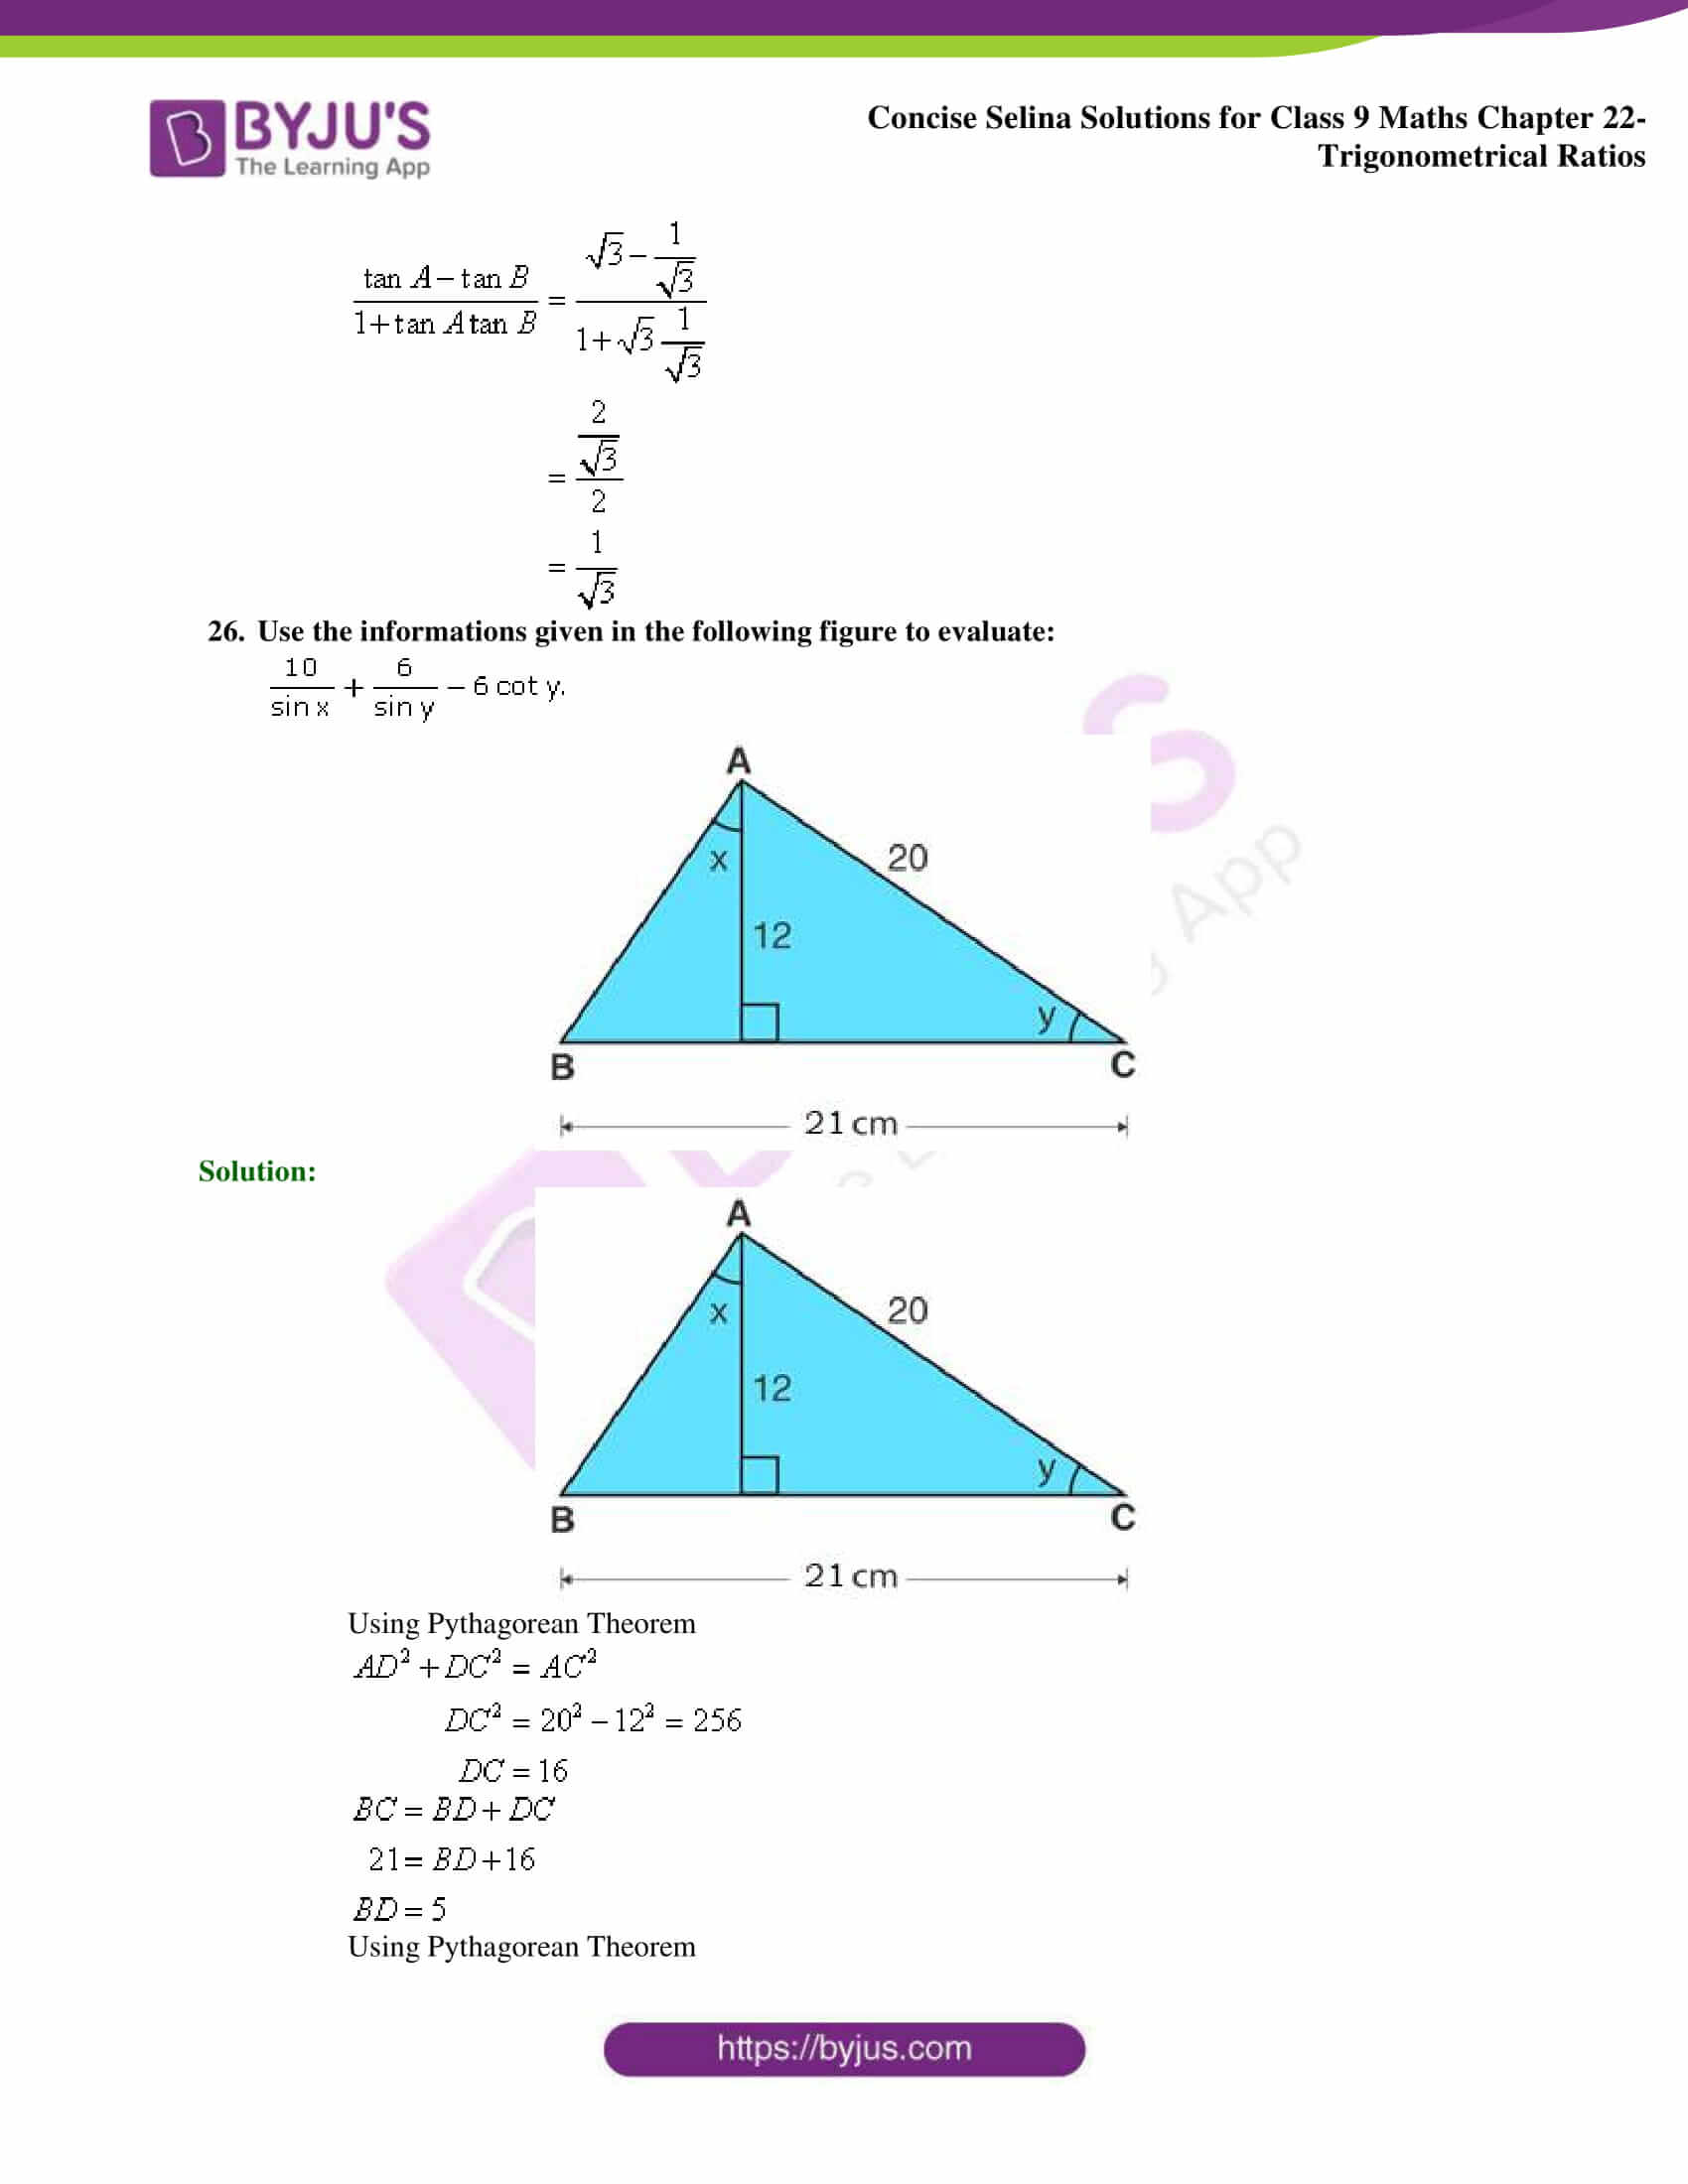 Concise Selina Solutions Class 9 Maths Chapter 22 Trigonometrical Ratios part 48